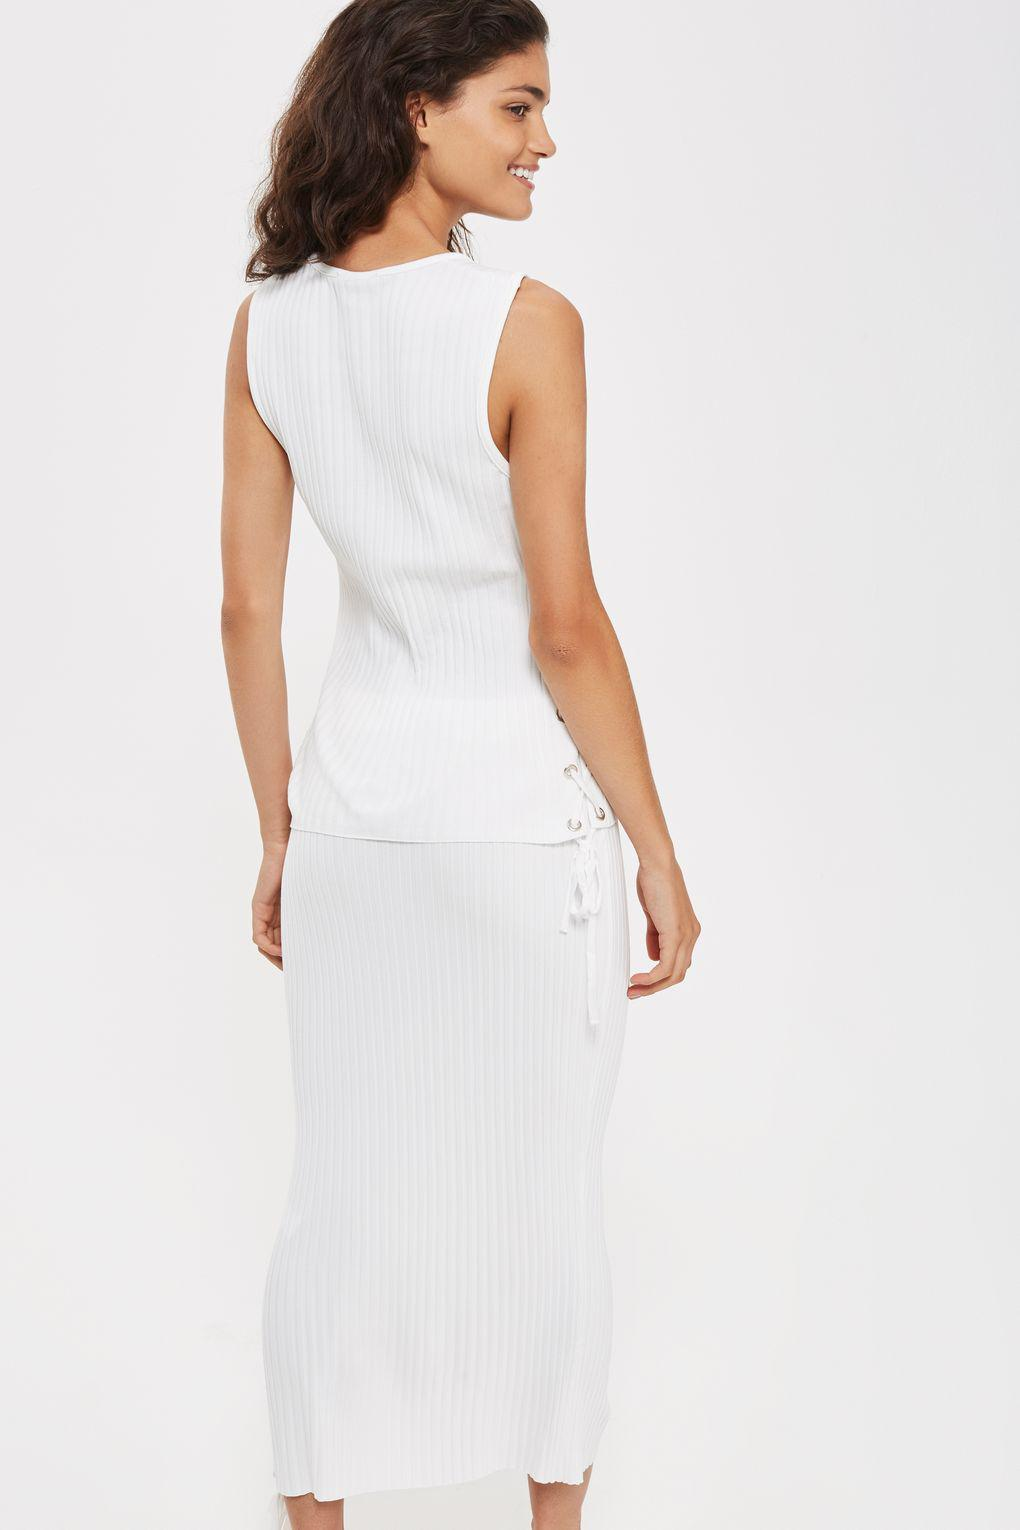 TOPSHOP Synthetic Calibrate Knit Co-ord Skirt in Ivory (White)